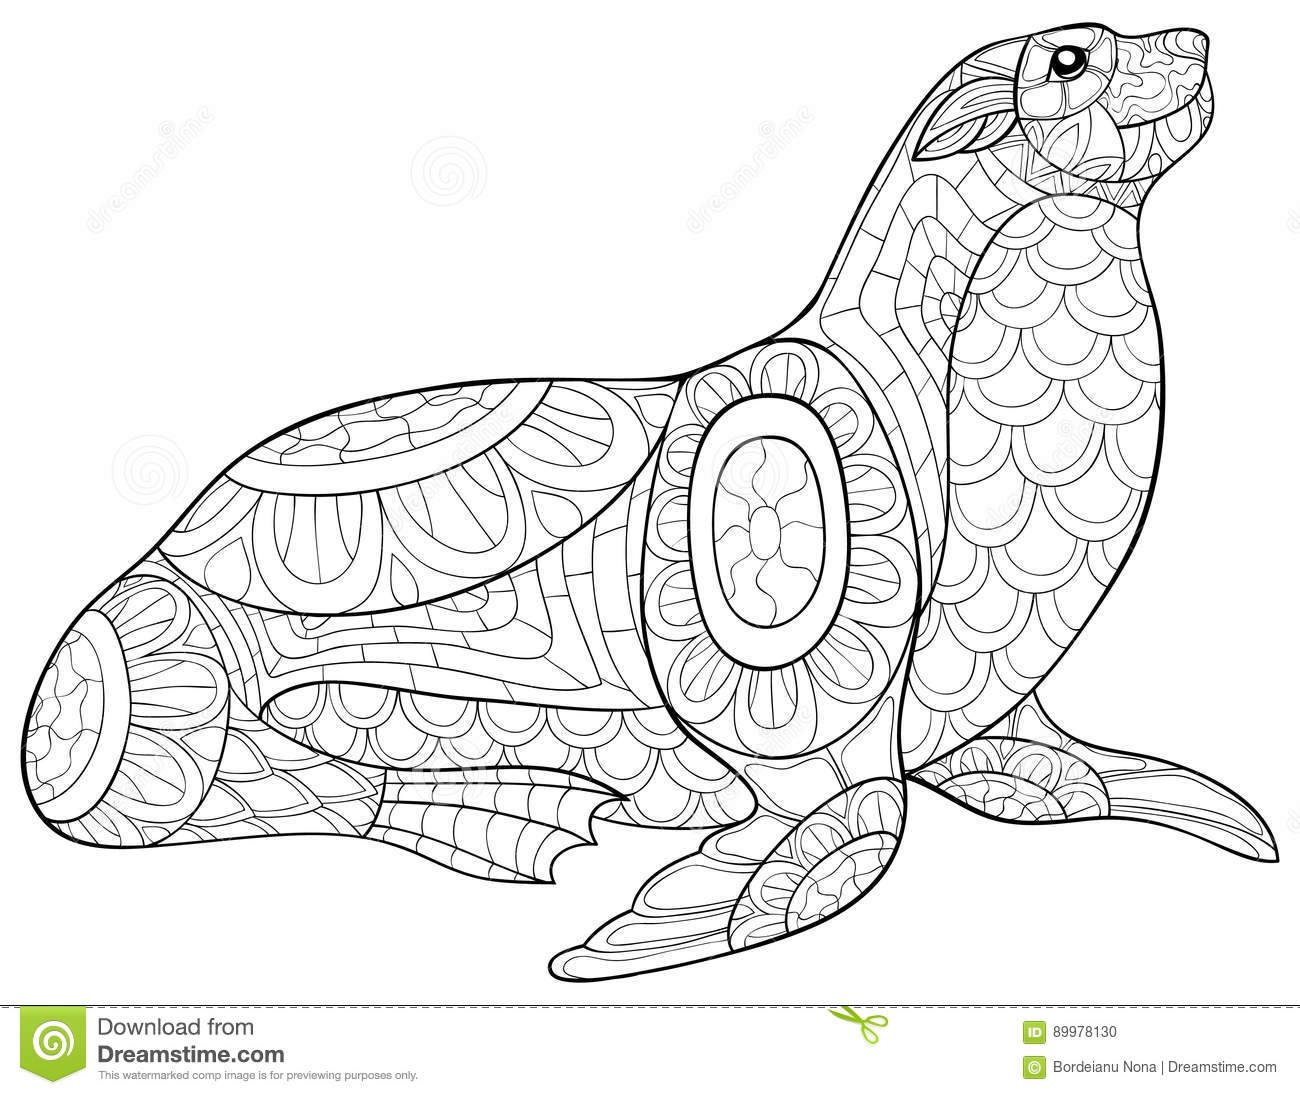 Adult coloring page seal. stock vector. Illustration of design ...